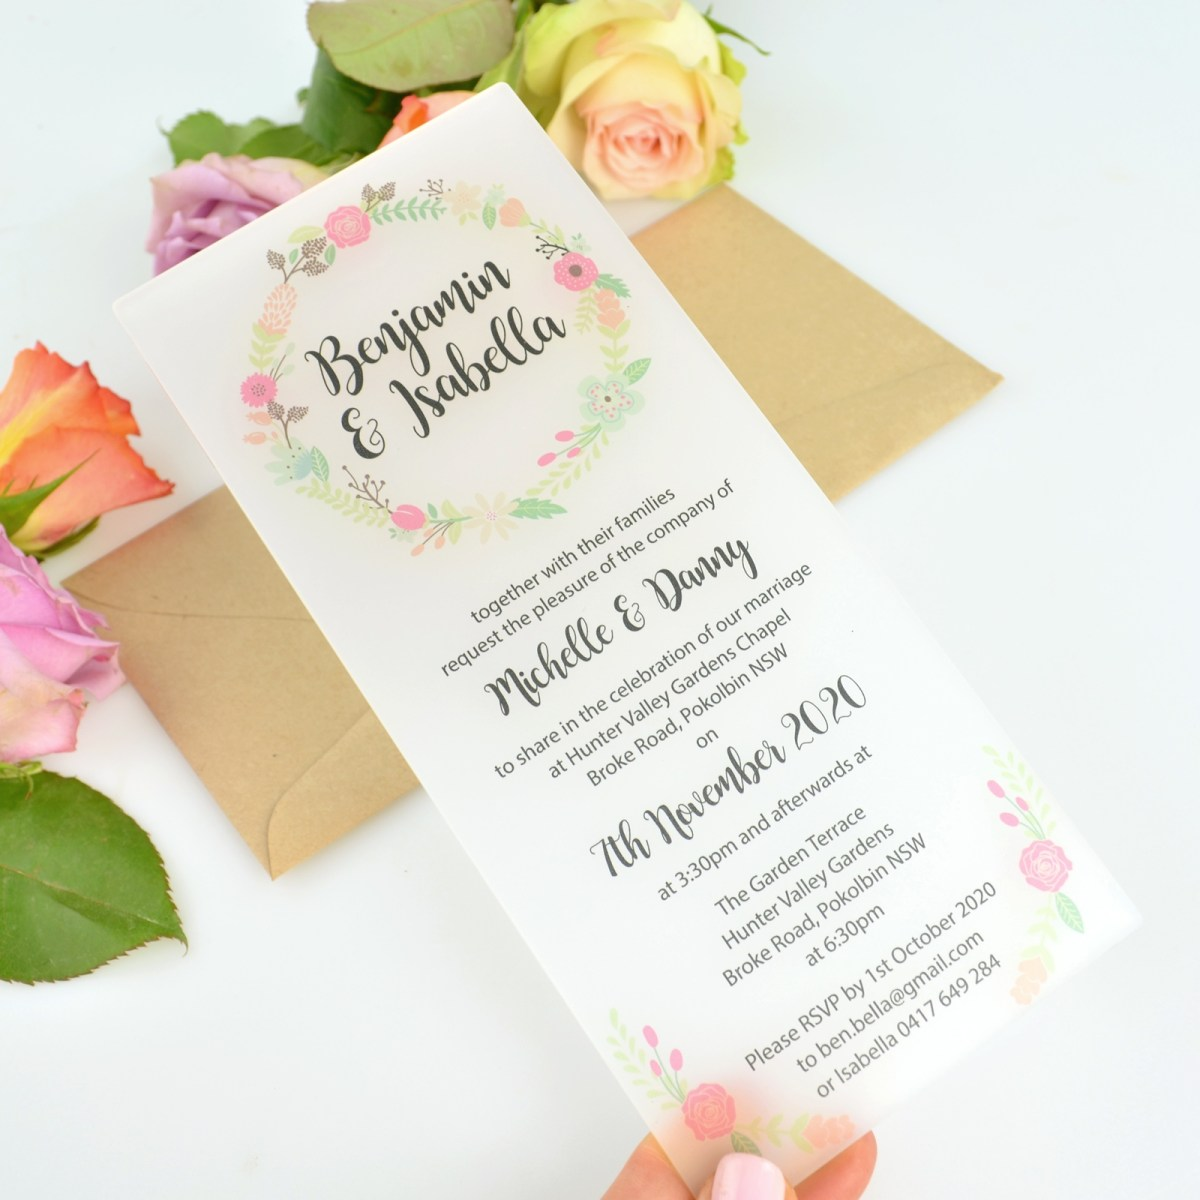 Wedding Invitations With Photos Wedding Invitations Personalised Favours